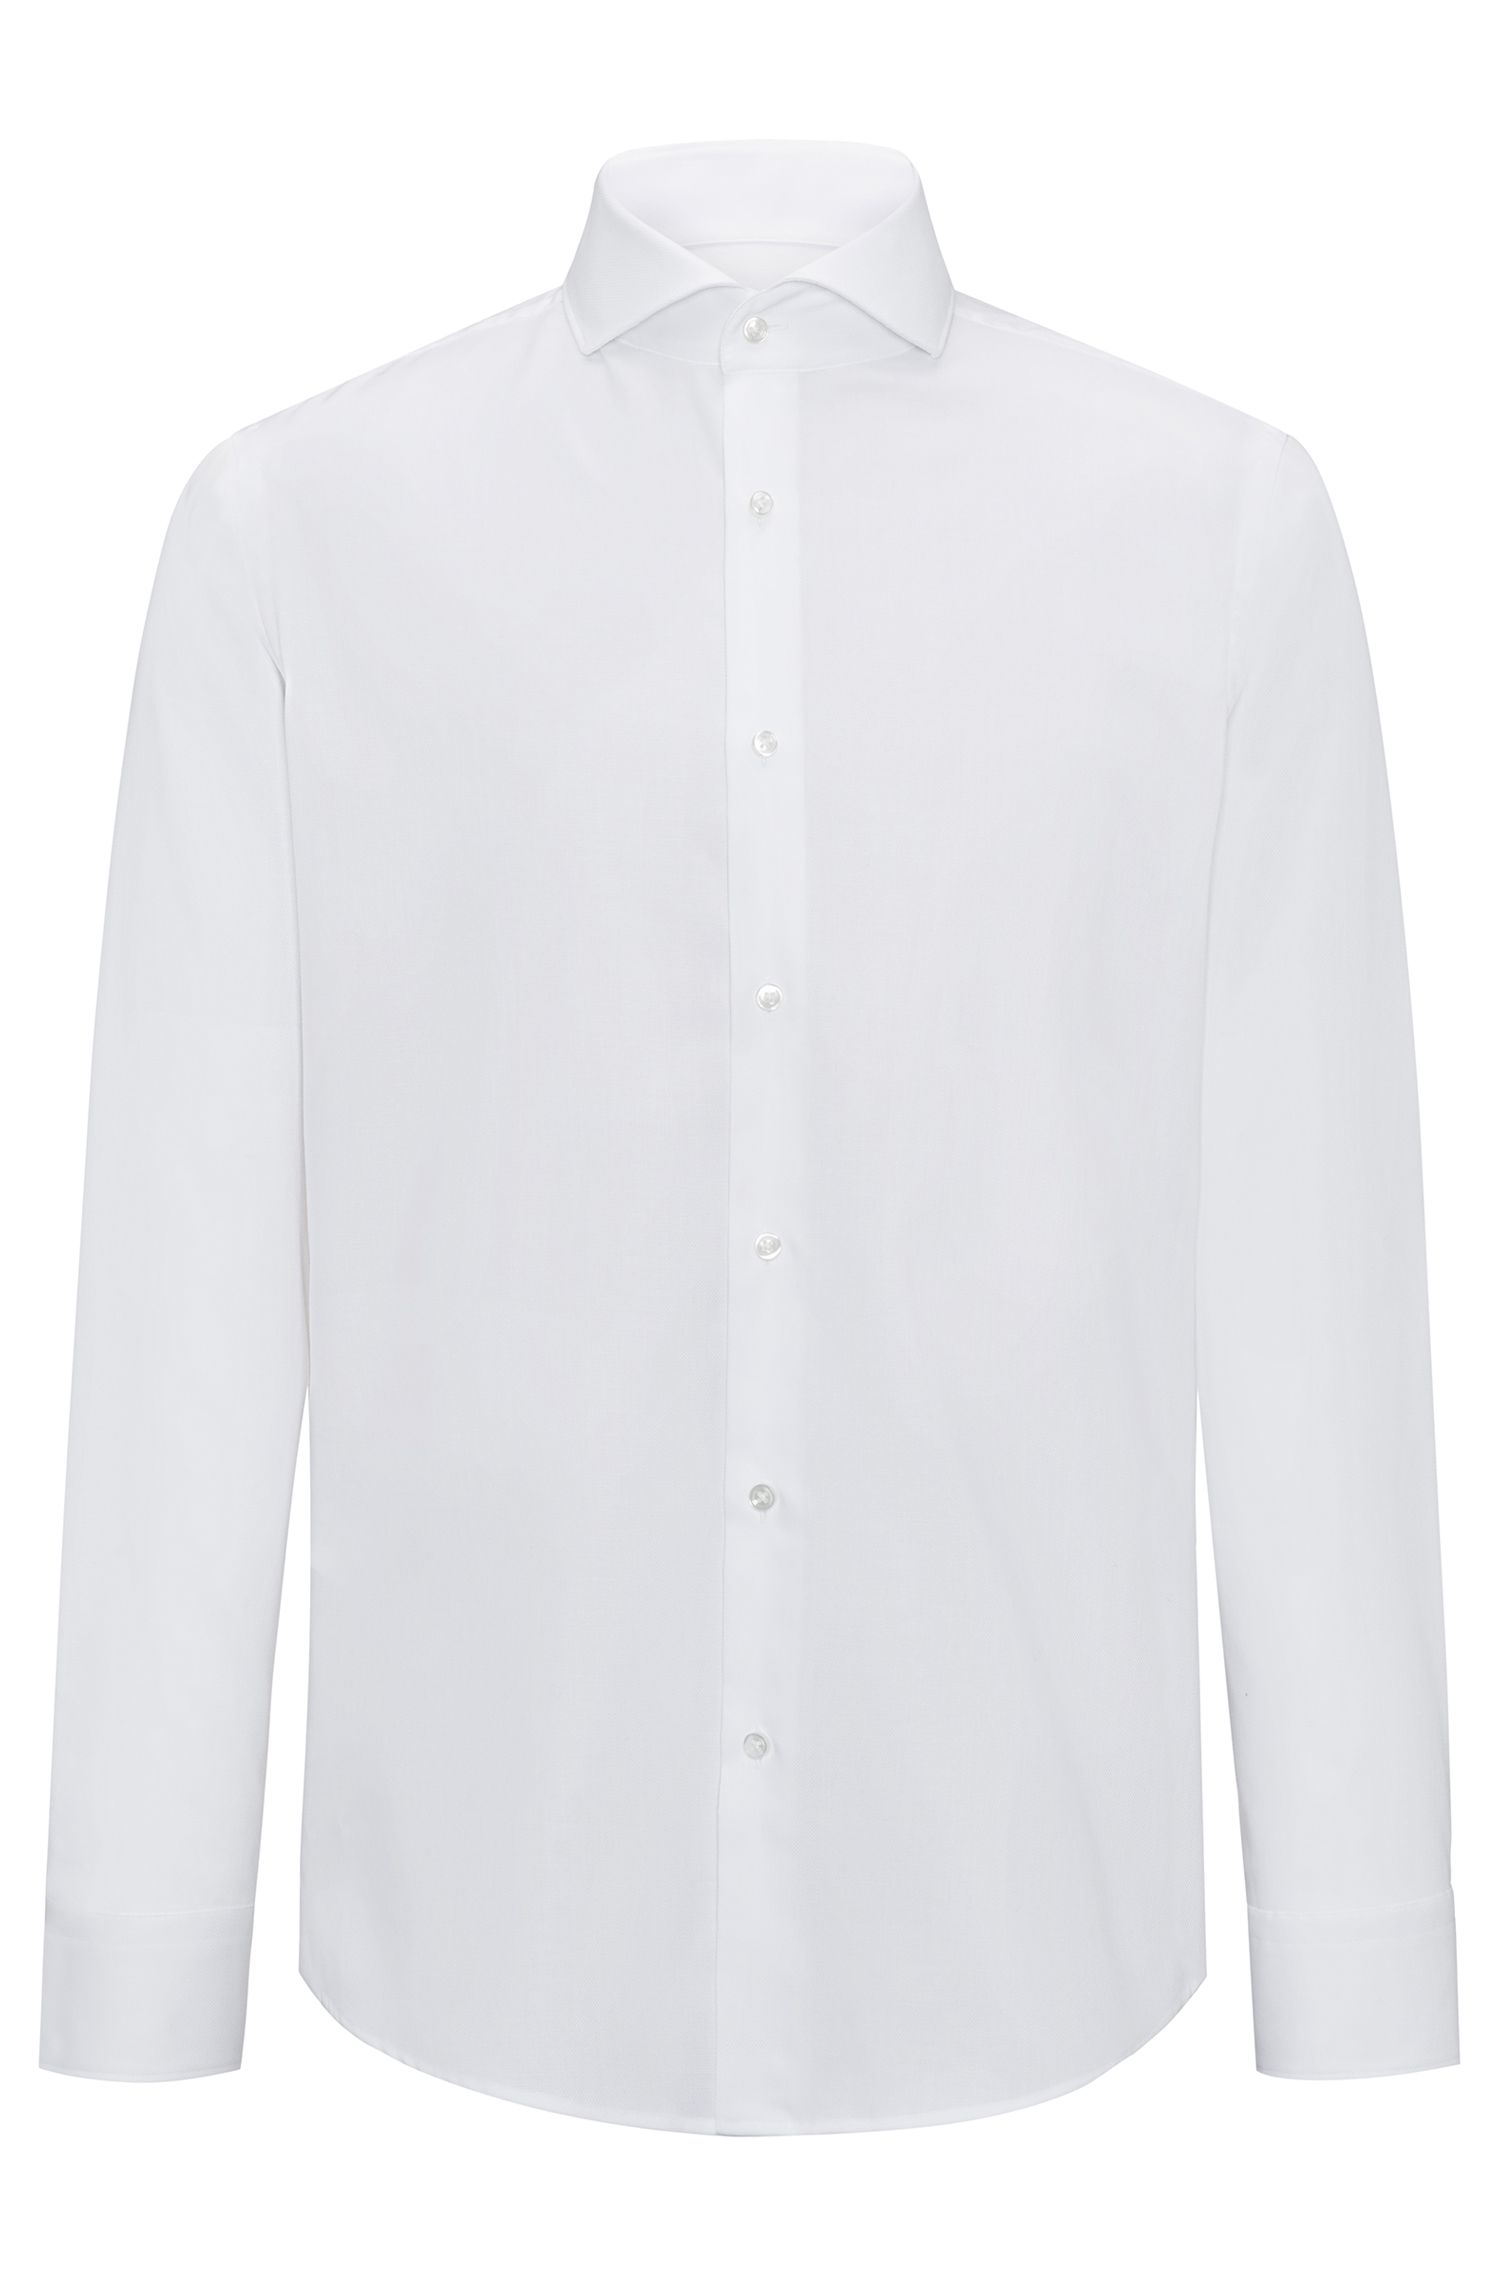 Regular-fit shirt in easy-iron cotton